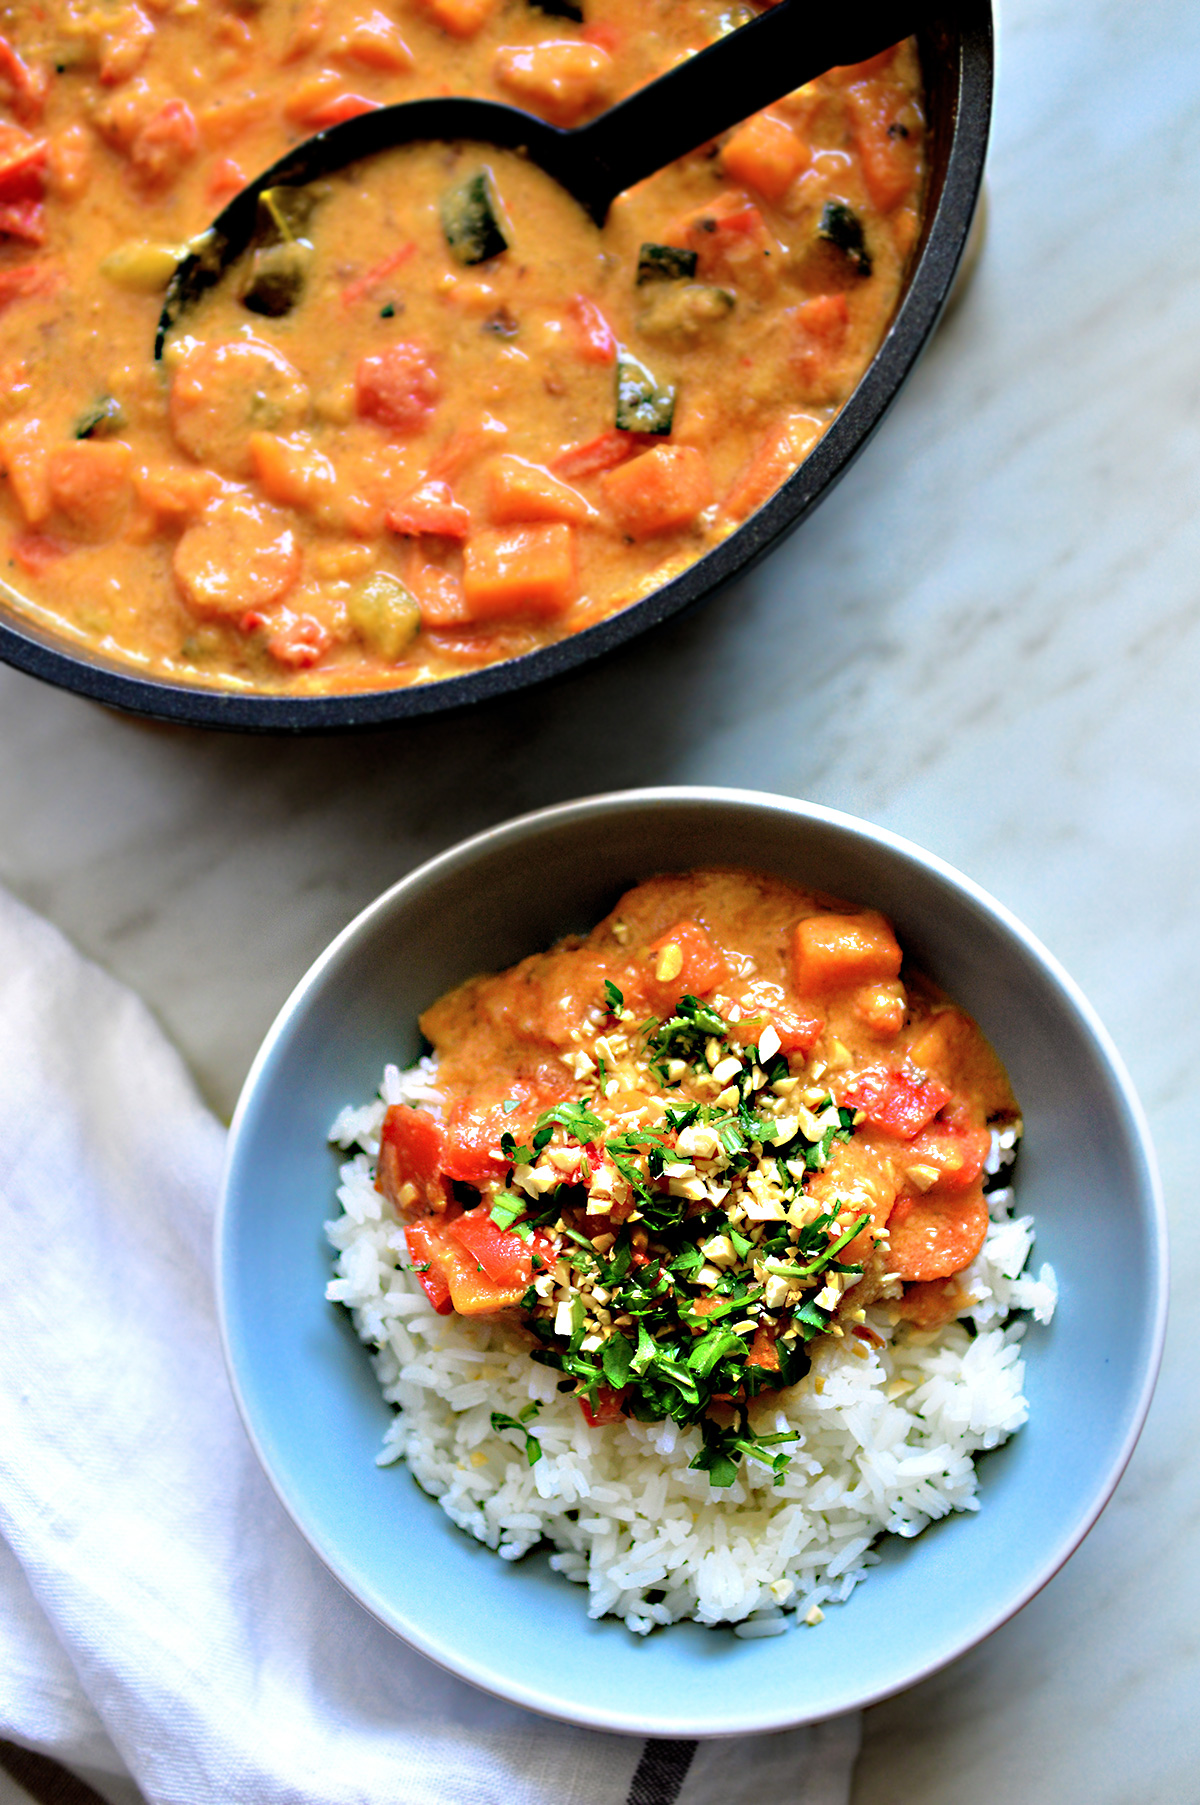 Peanut & Red Thai Vegan Curryola